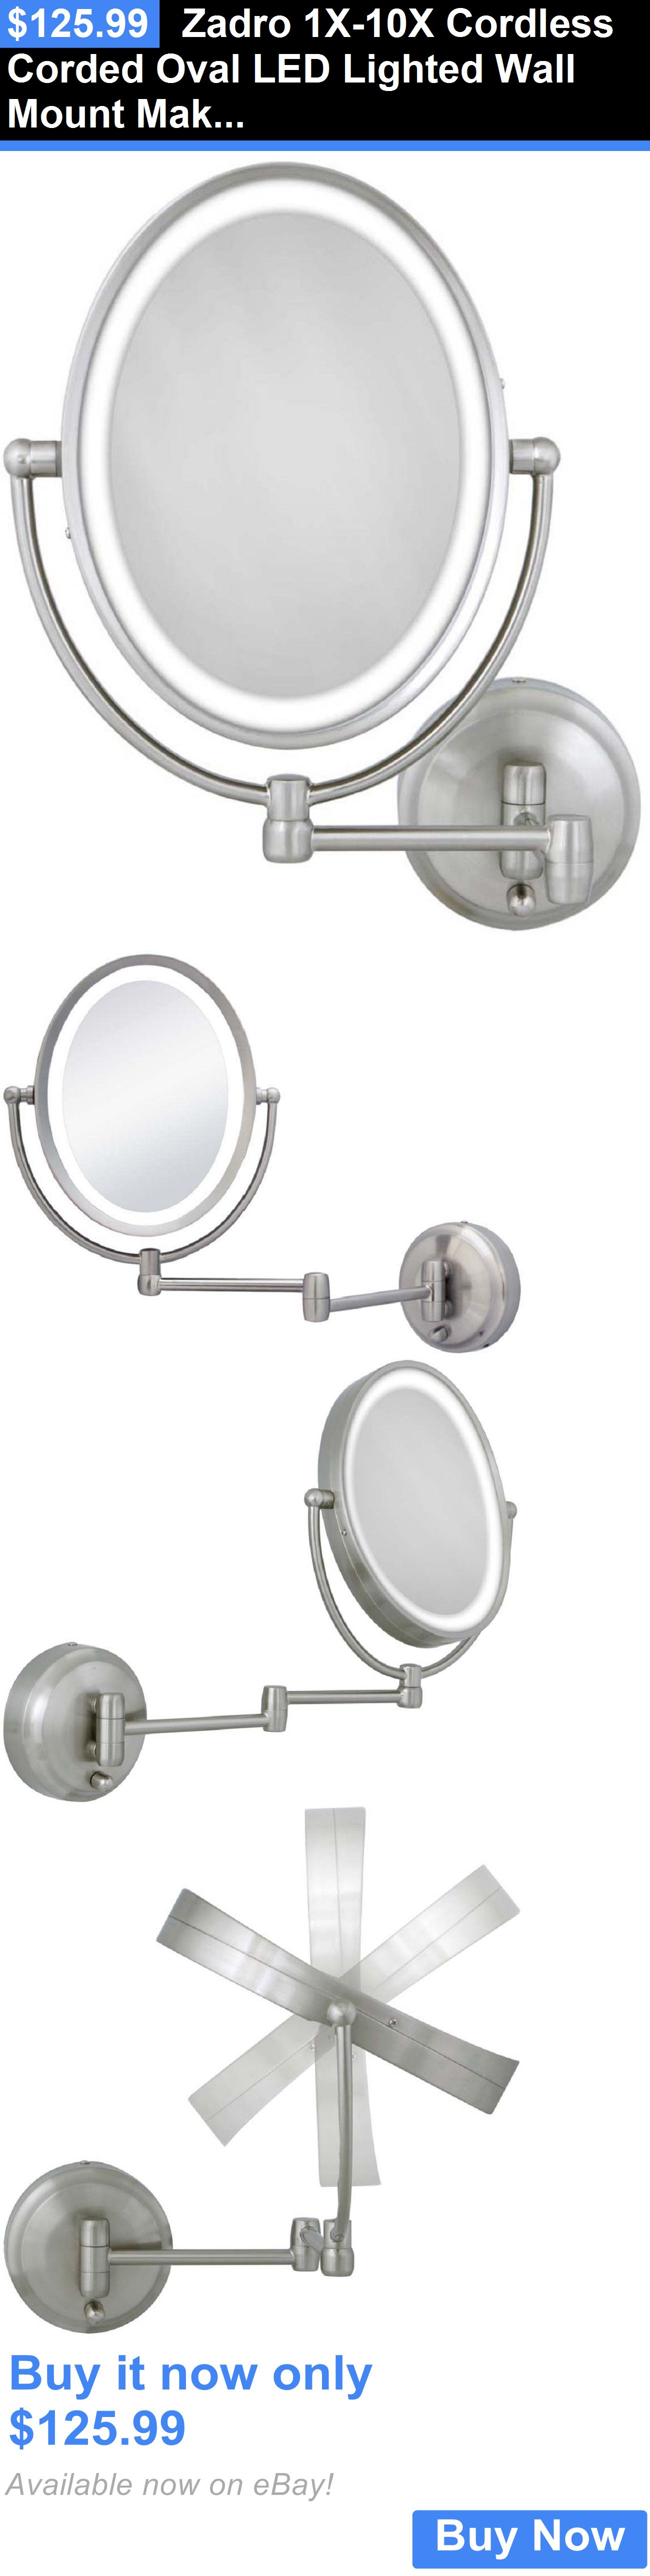 Makeup Mirrors Zadro 1X10X Cordless Corded Oval Led